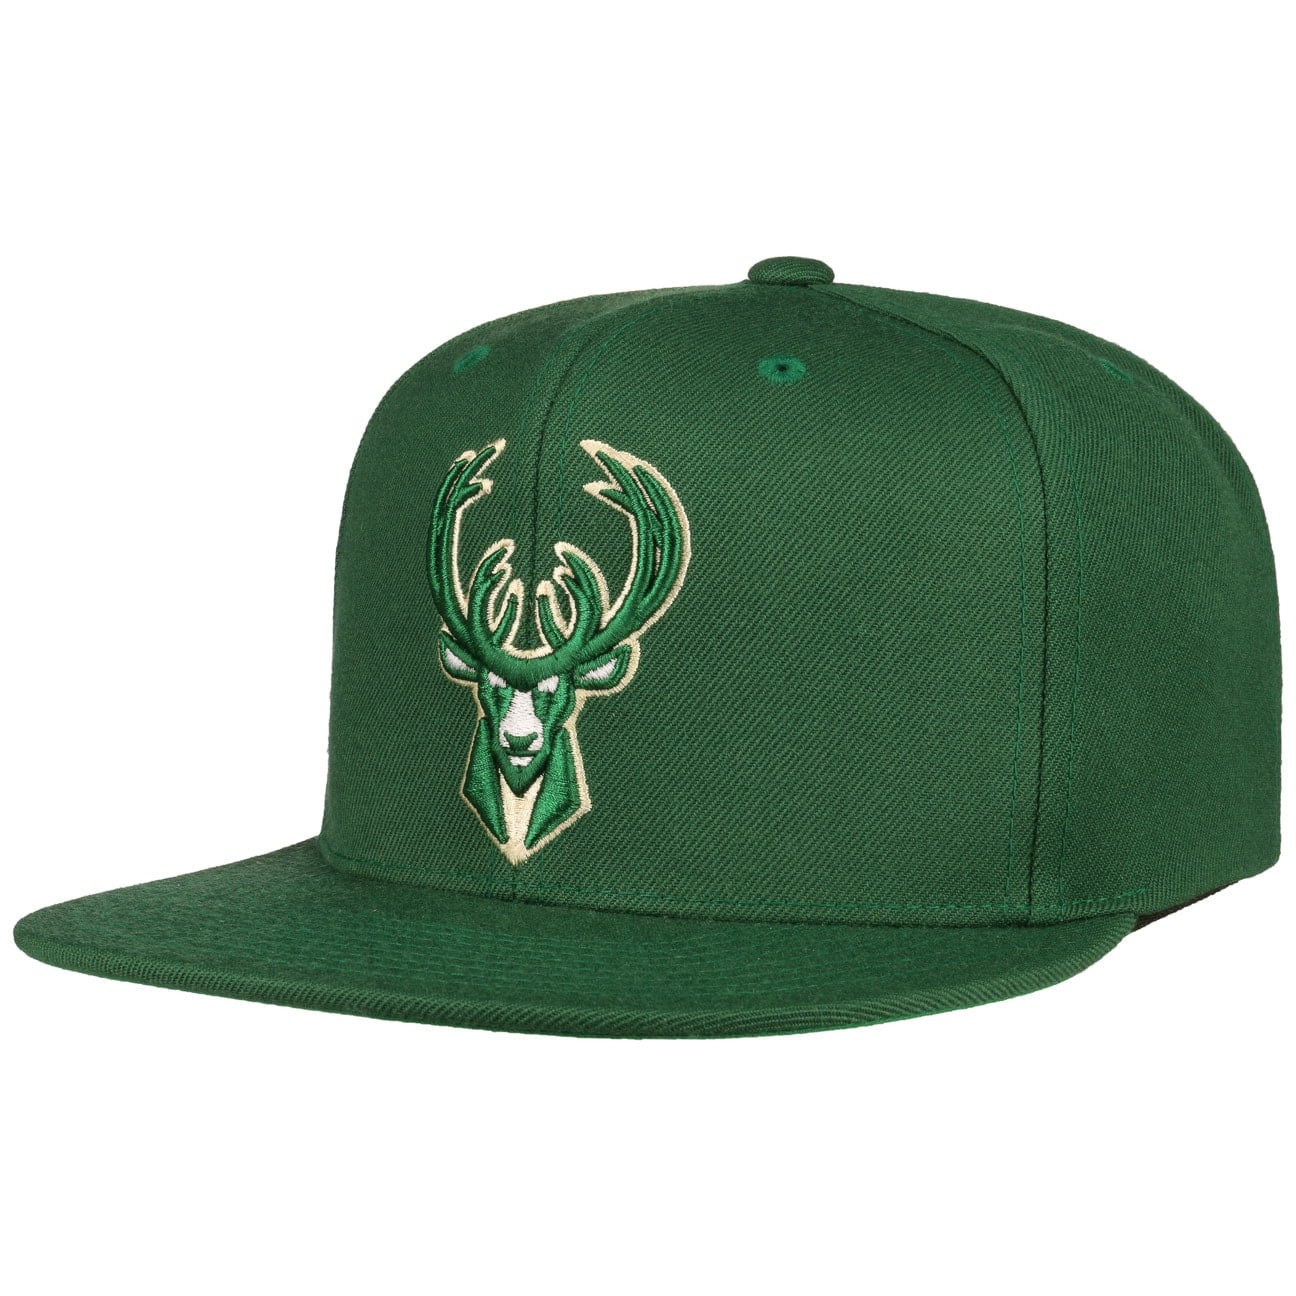 wool-solid-2-bucks-by-mitchell-ness